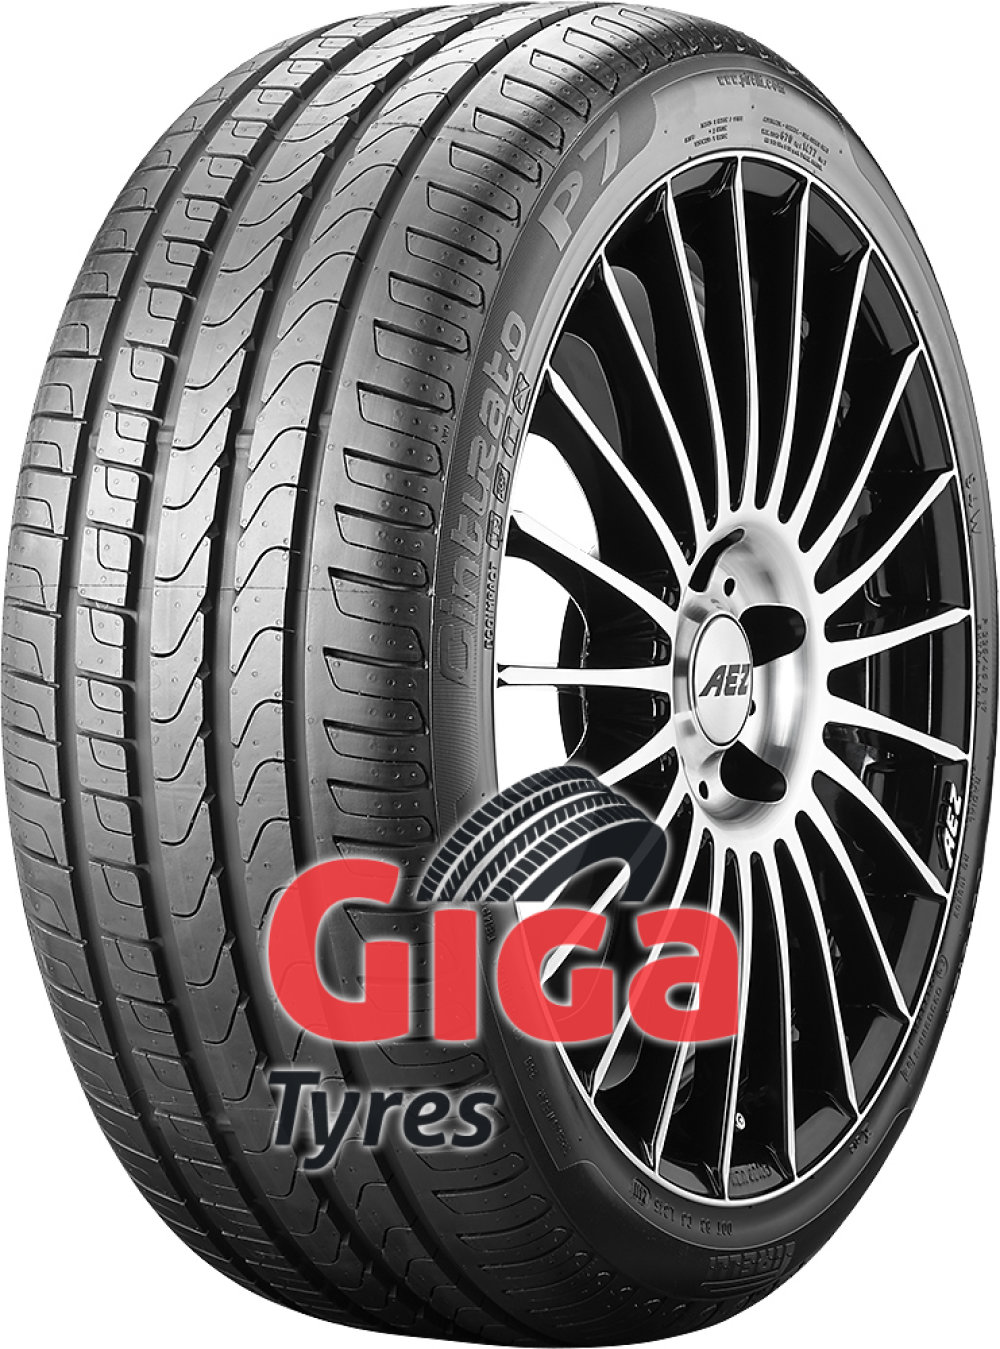 Pirelli Cinturato P7 runflat ( 205/55 R16 91W *, ECOIMPACT, with rim protection (MFS), runflat )